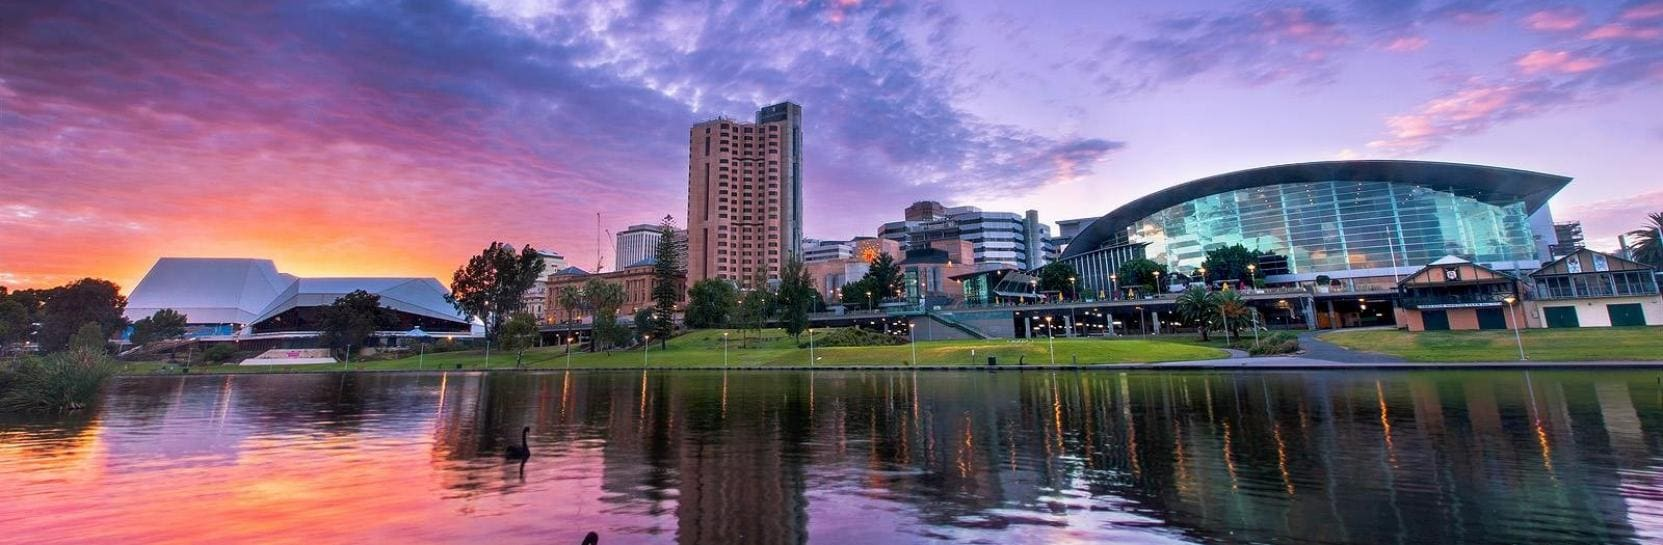 Adelaide Convention Centre, Adelaide, SA © Ben Goode